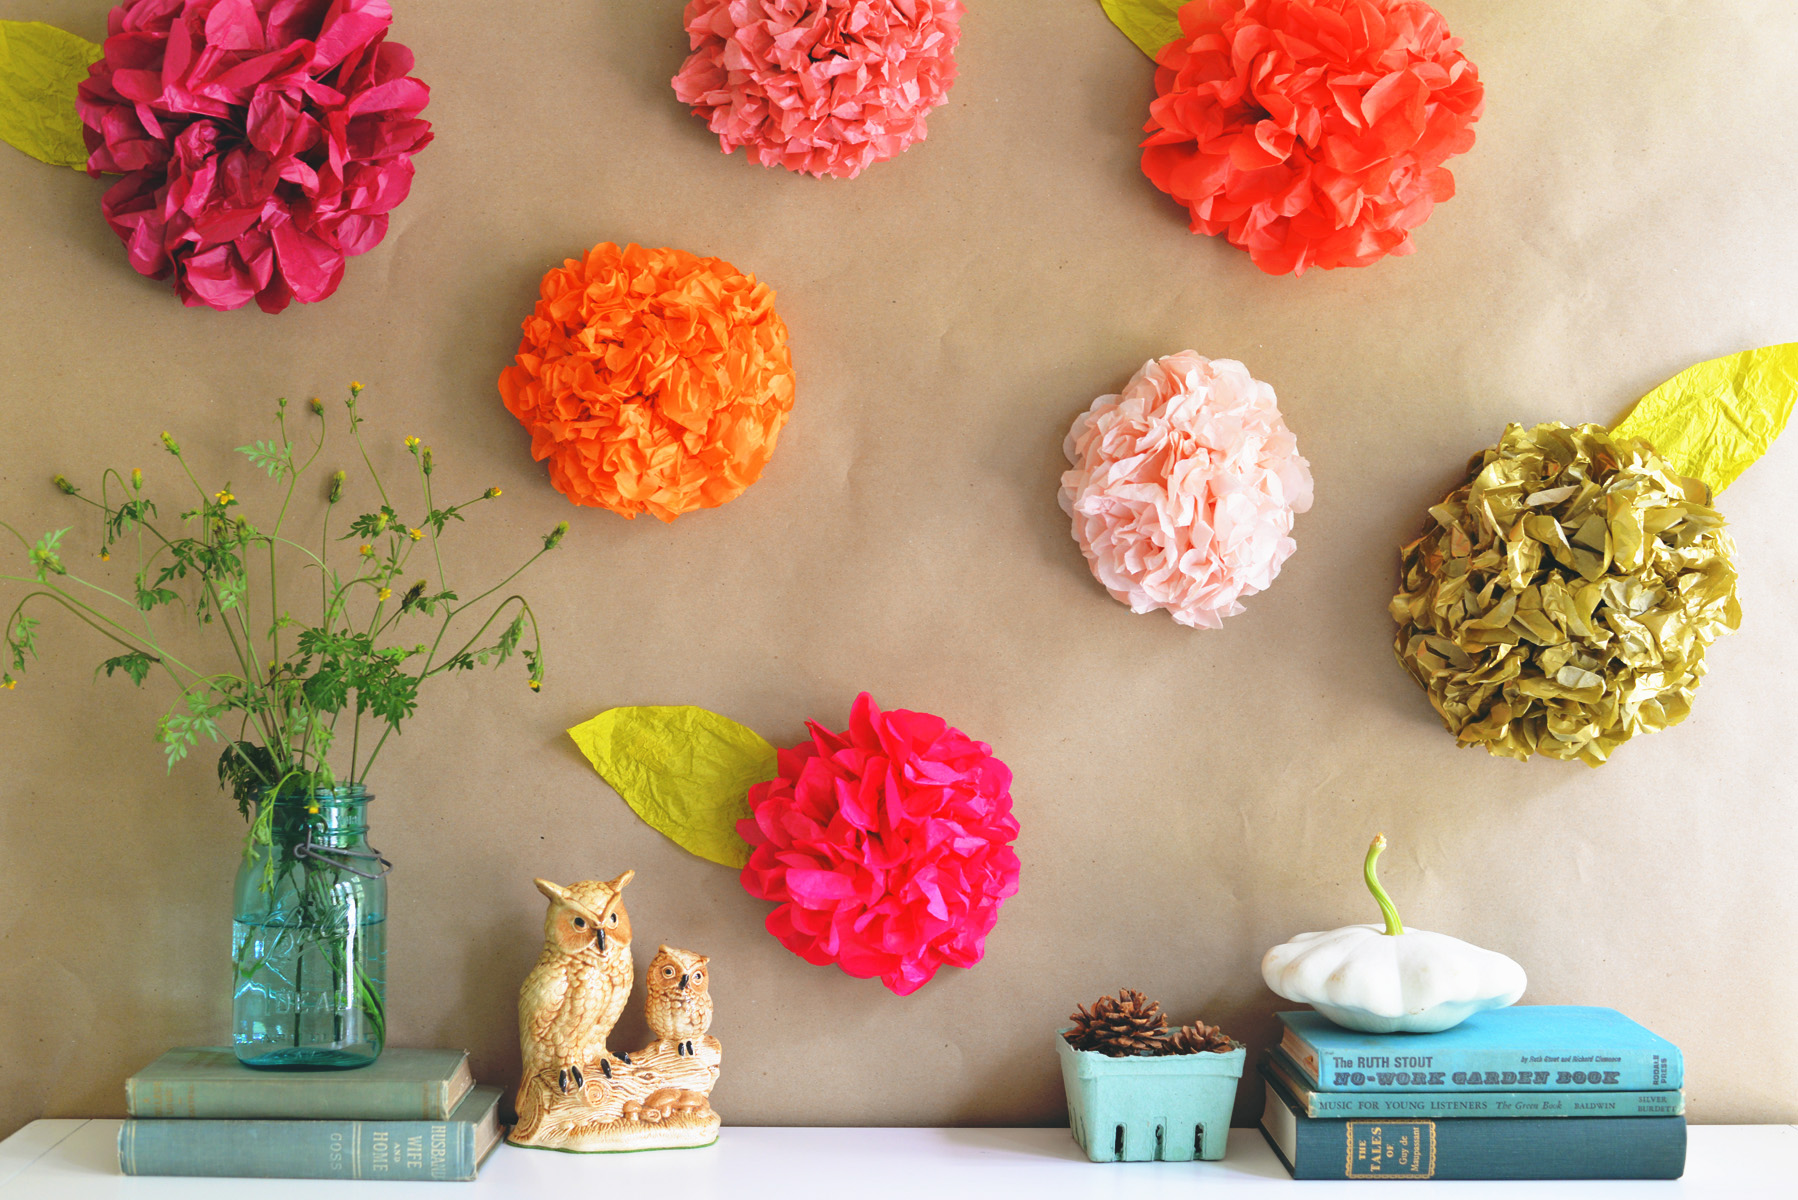 & DIY Tissue Paper Flower Backdrop